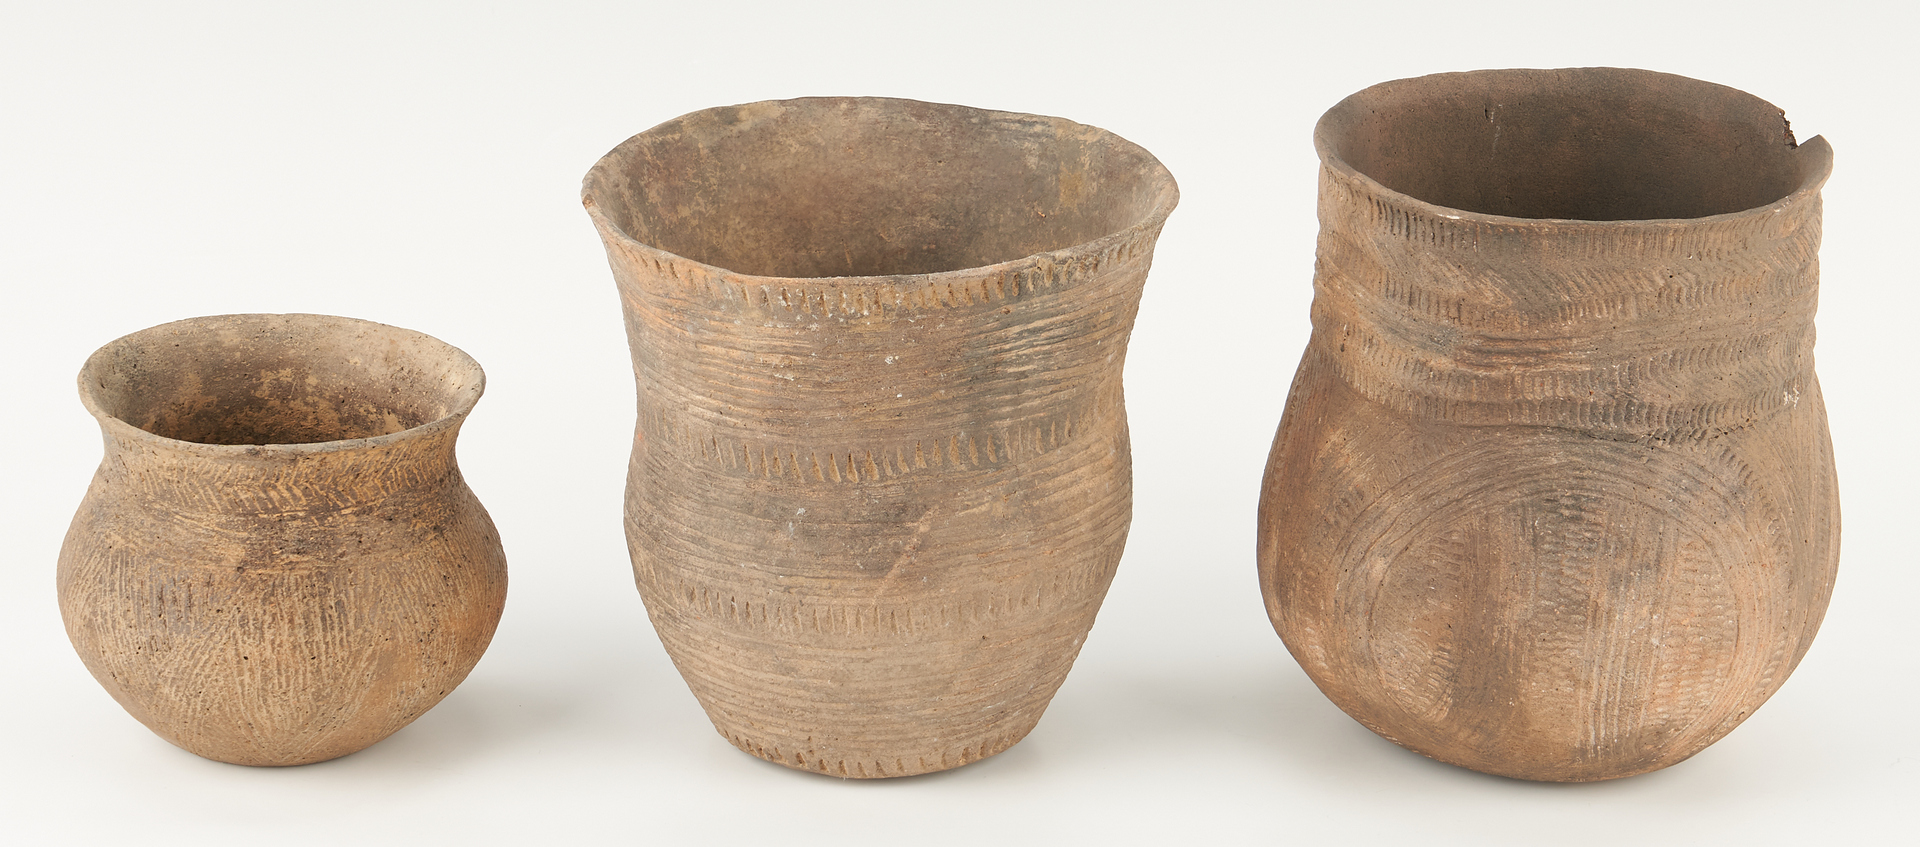 Lot 1112: 3 Mississippian Caddo Pottery Jars, Incised